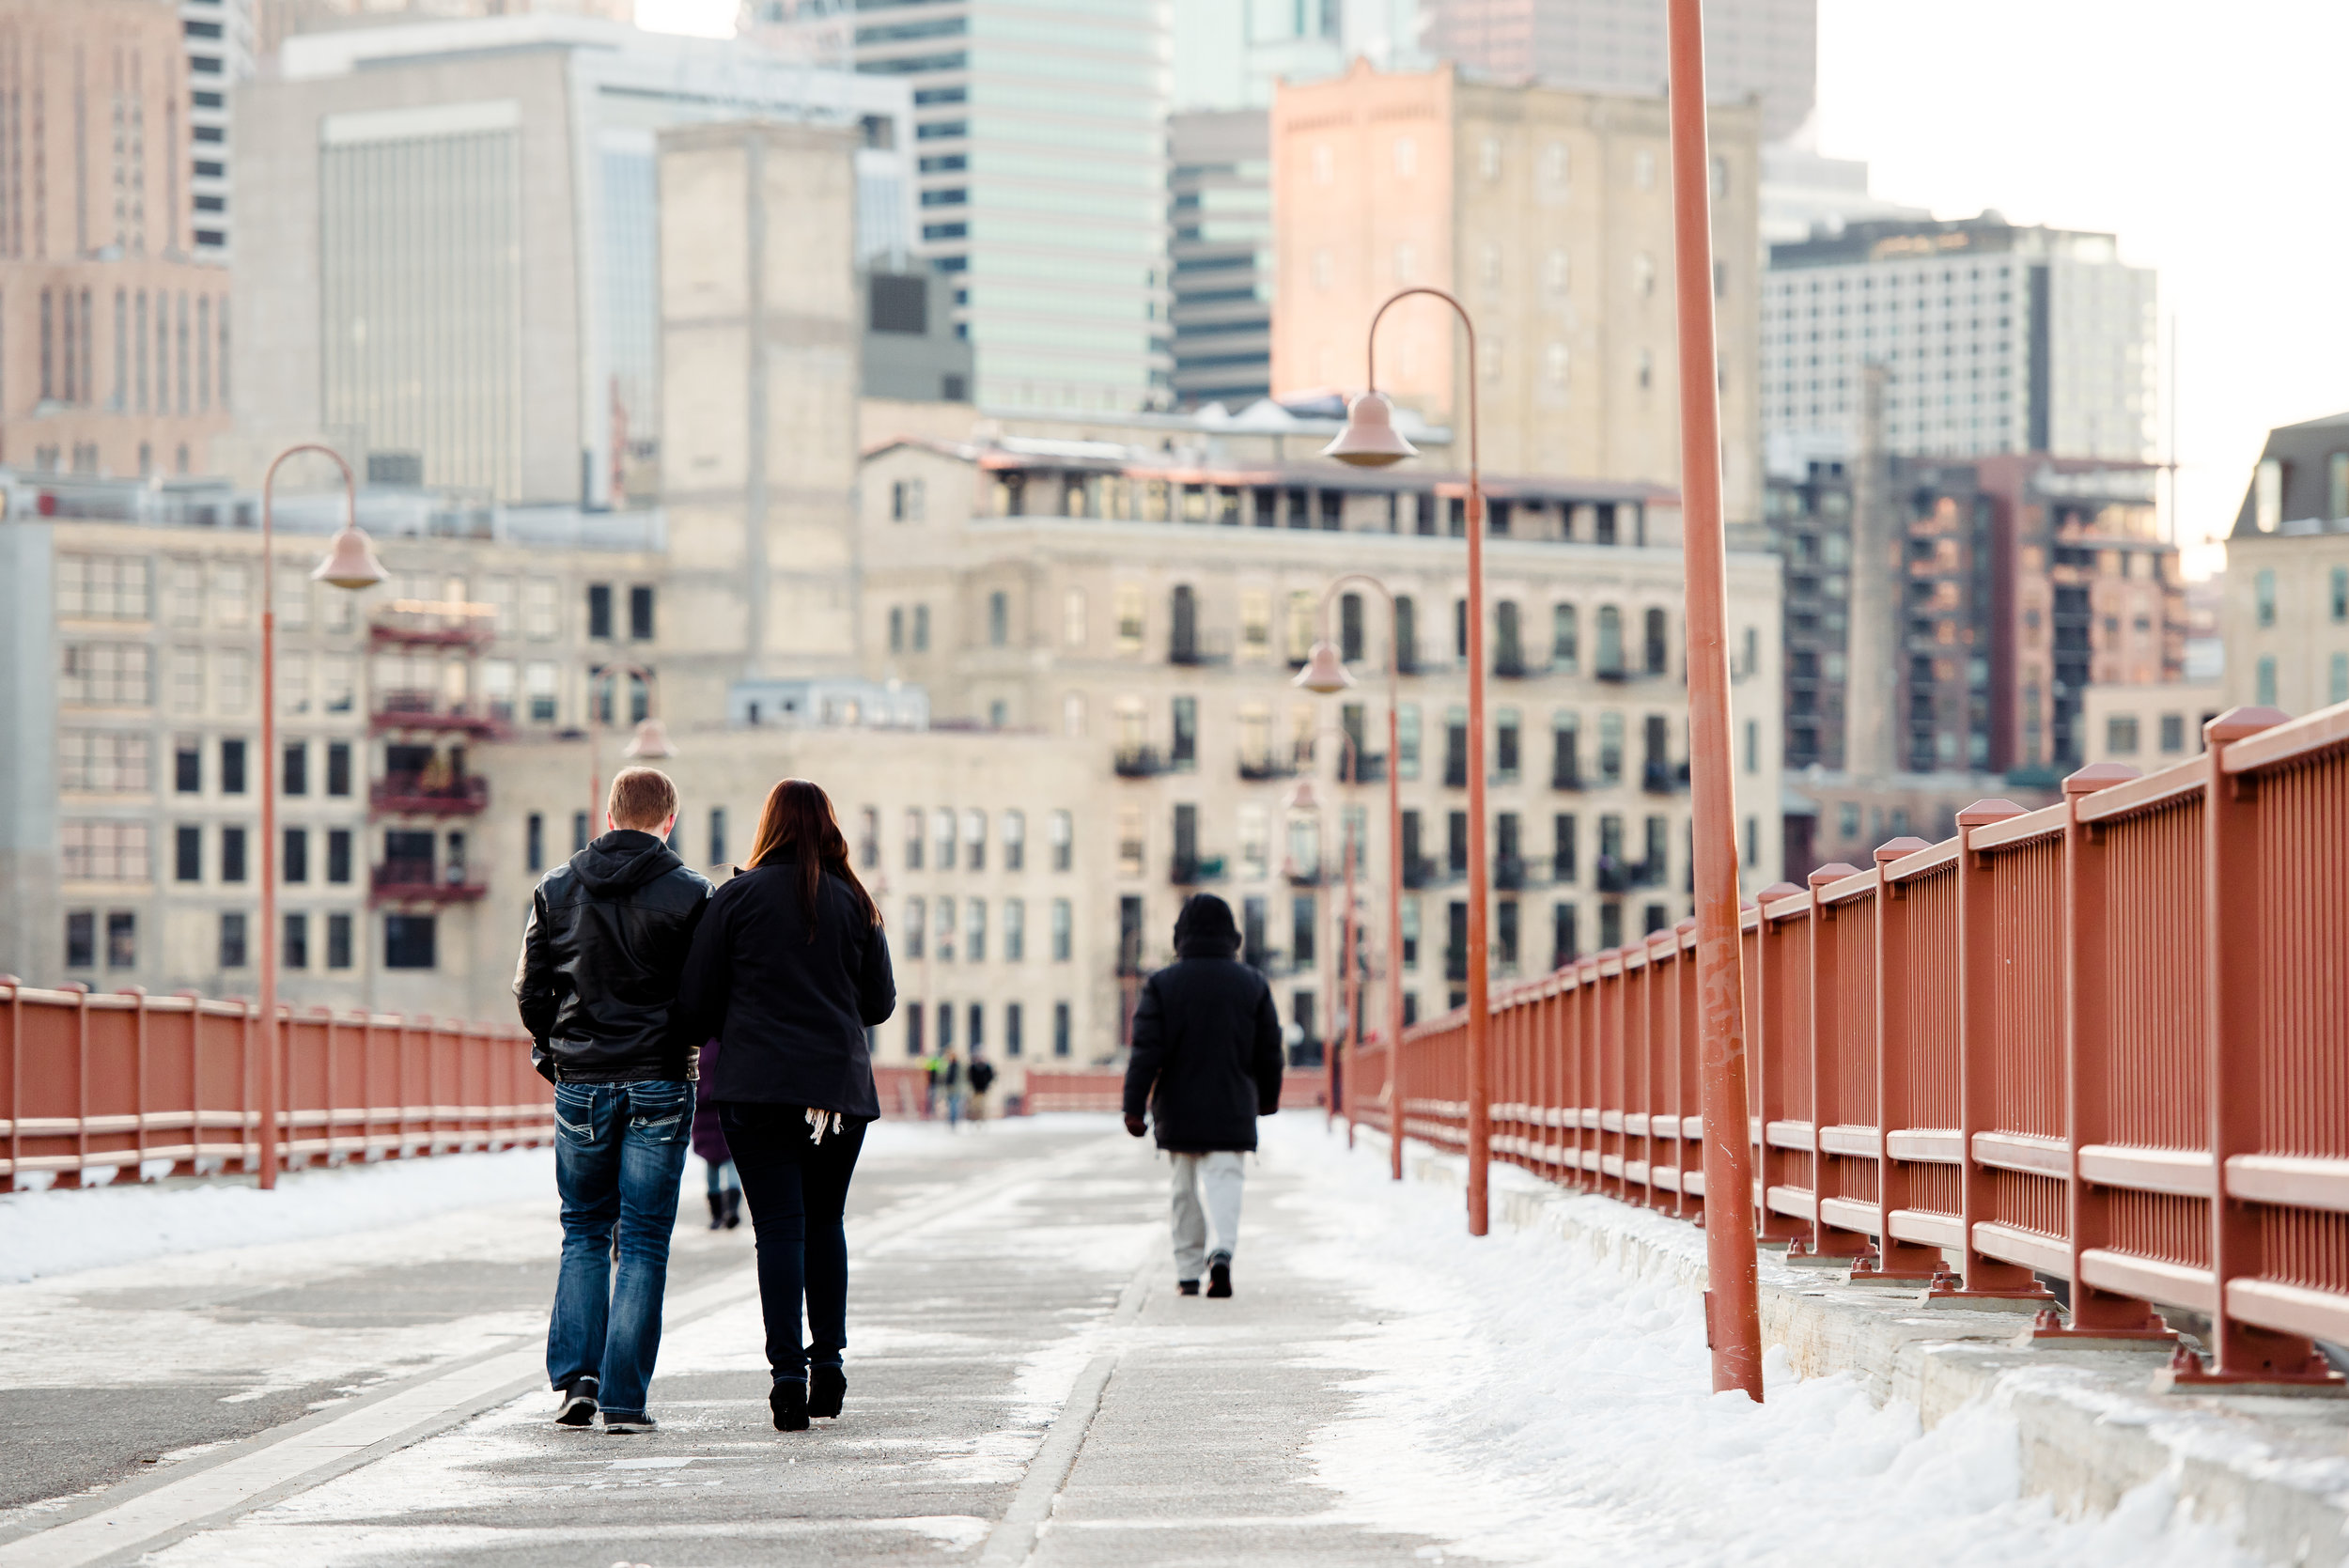 Stone Arch Bridge Proposal - Couple Walking at Sunset in the Winter Snow - MPLS Engagement Proposal Photography